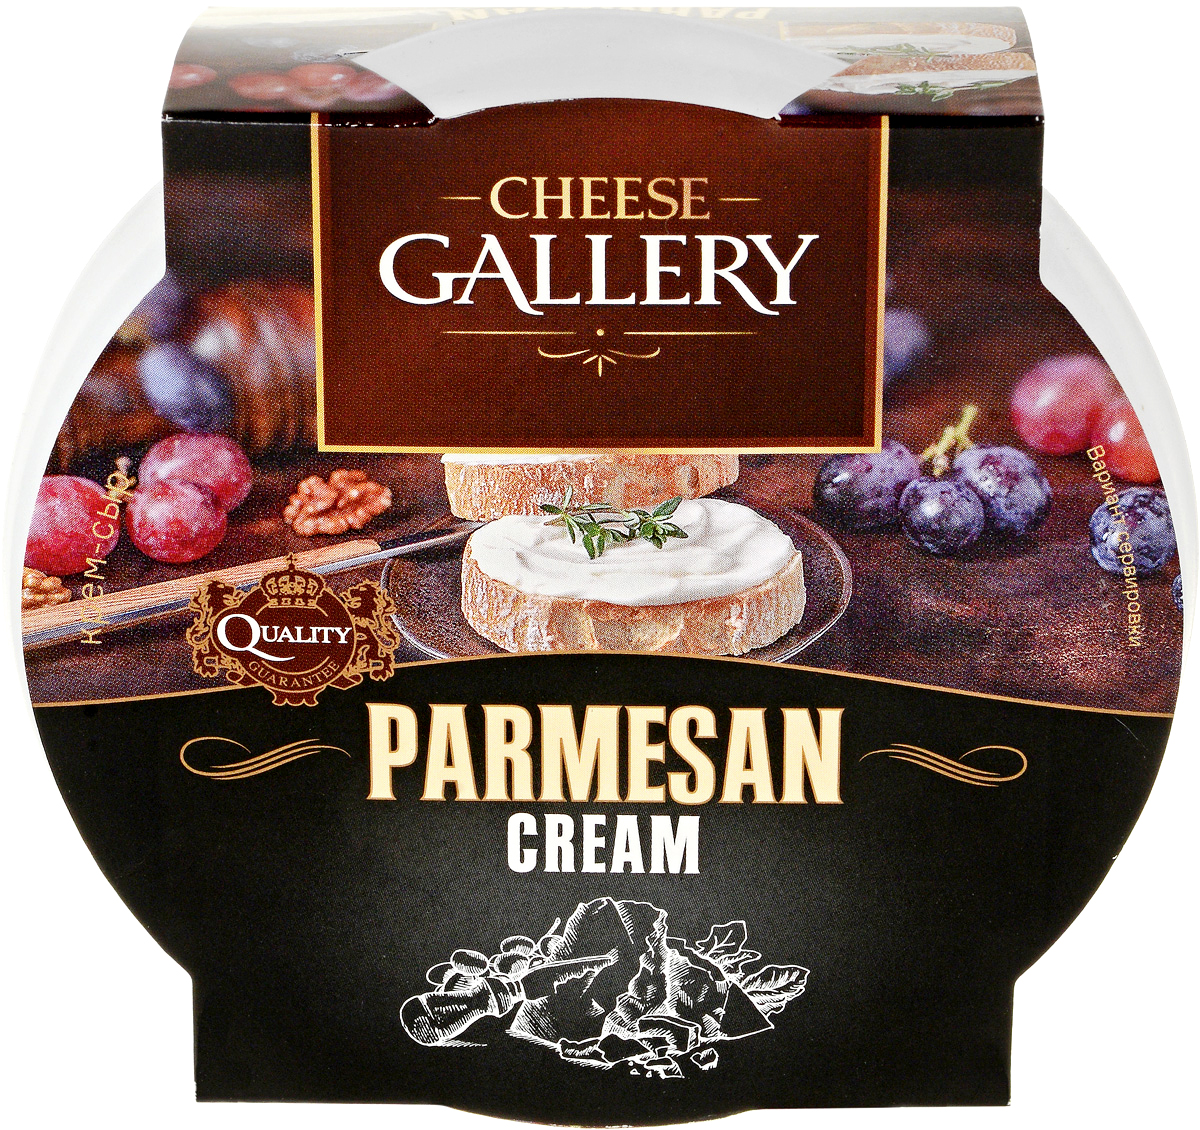 Cheese Gallery Parmesan Крем-сыр, 150 г cheese gallery parmesan крем сыр 150 г